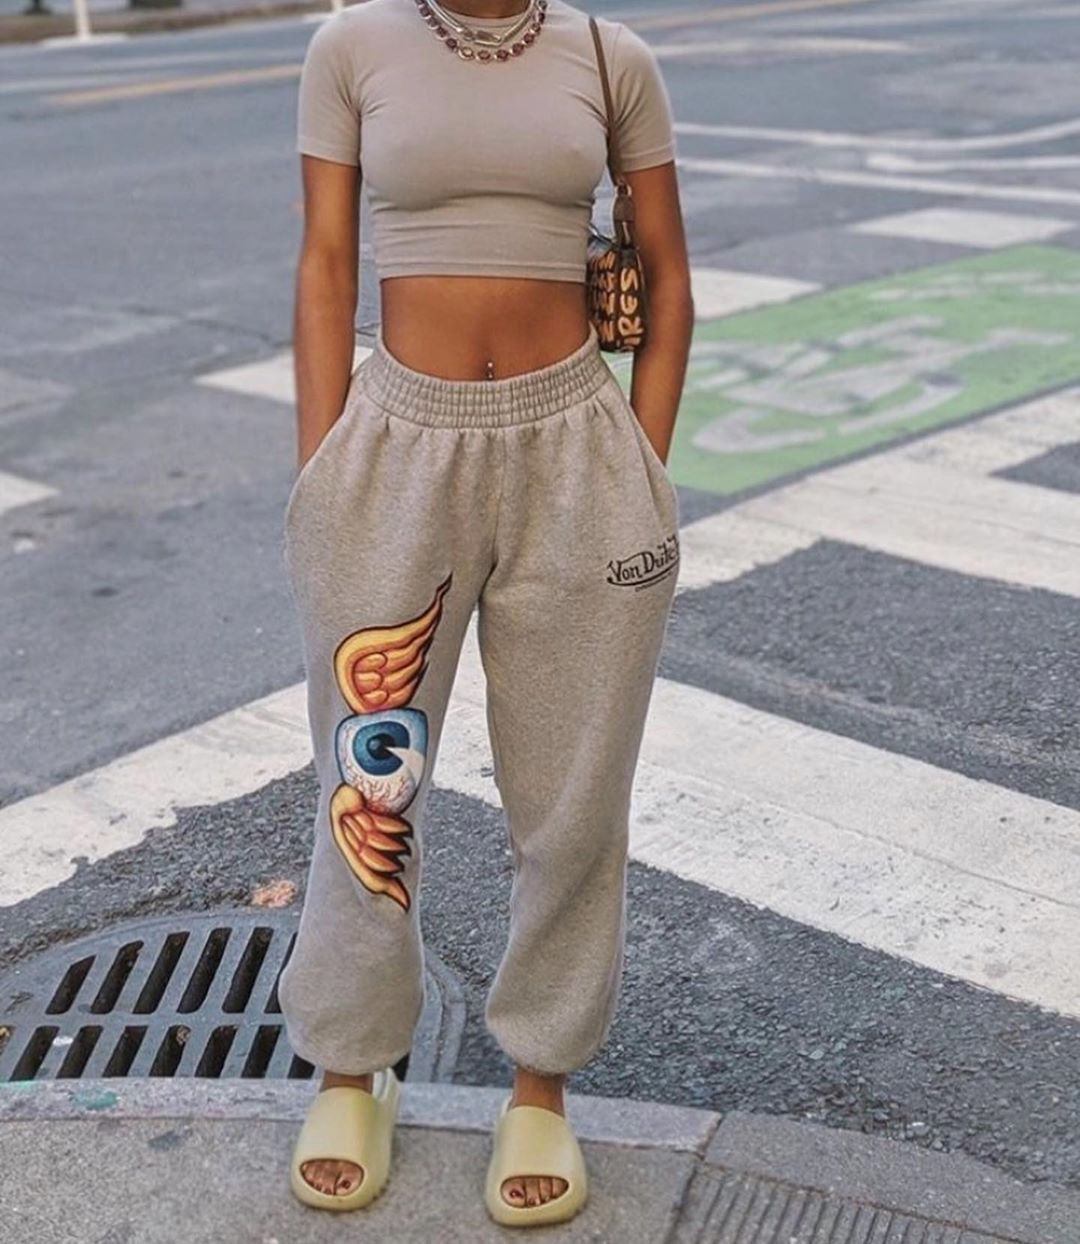 yeezy outfits instagram